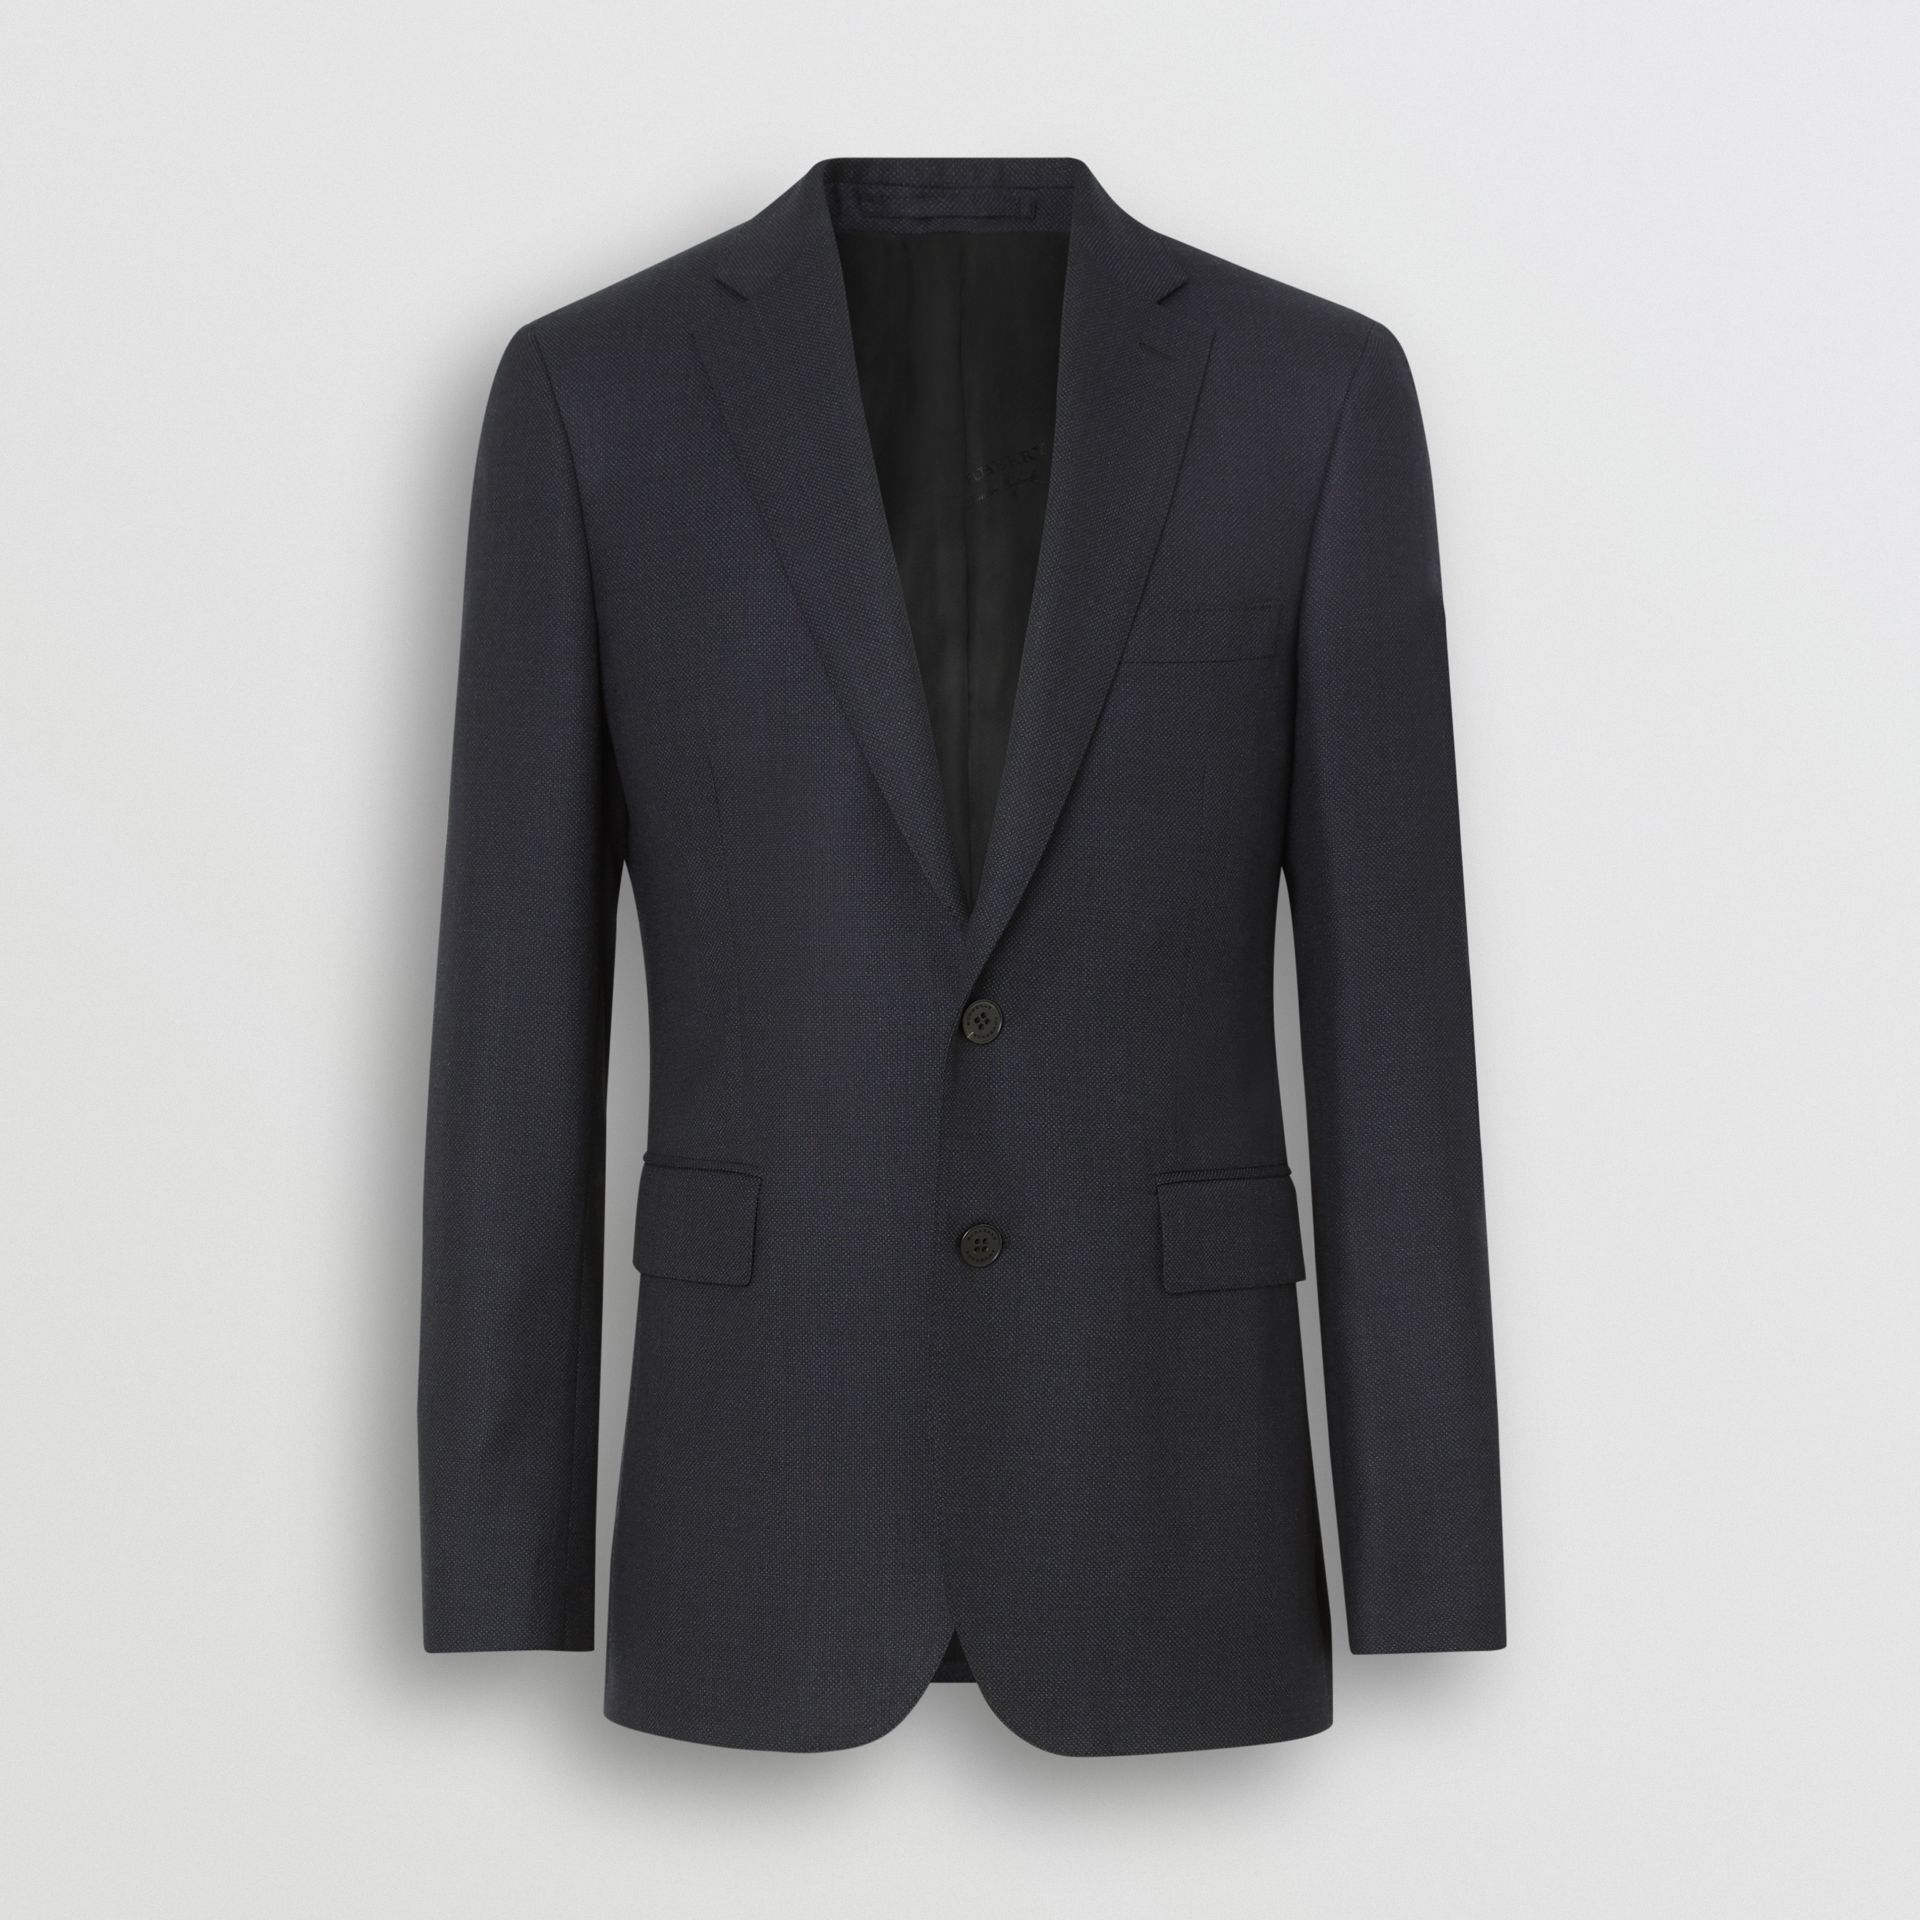 Slim Fit Birdseye Wool Suit in Navy - Men | Burberry United States - gallery image 3